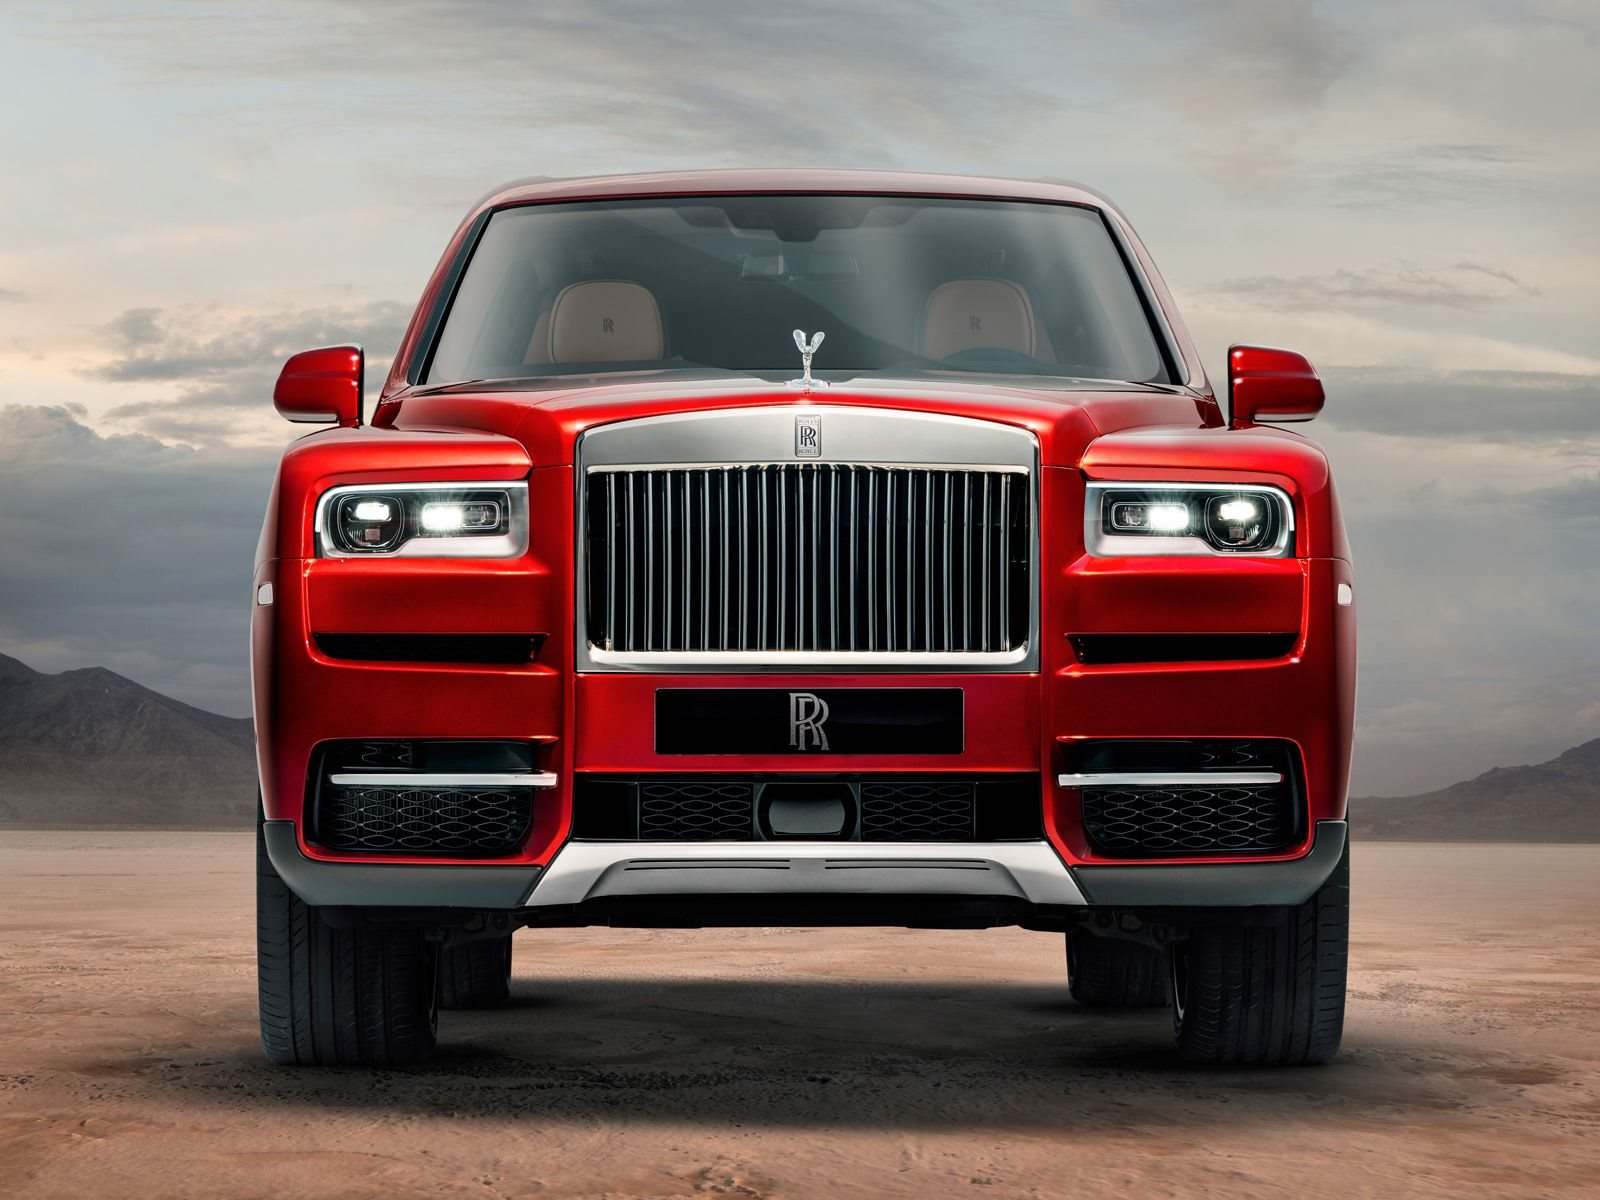 foto Rolls Royce Just Teased The Don Of Driverless Cars